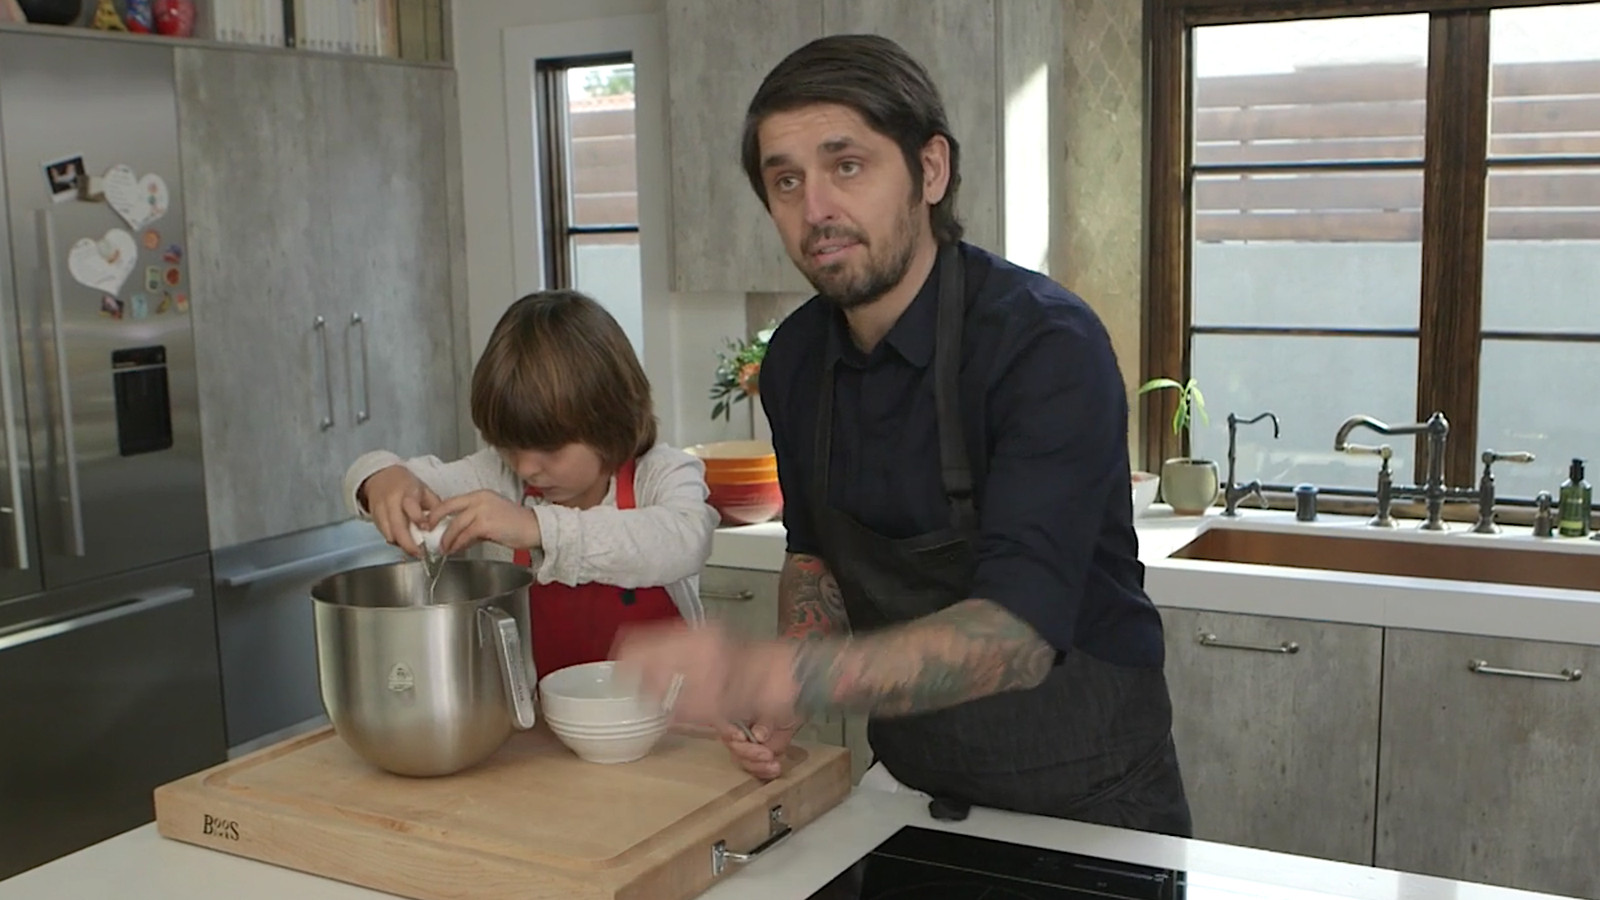 Watch chef Ludo Lefebvre make crepes at home with his hilarious kid